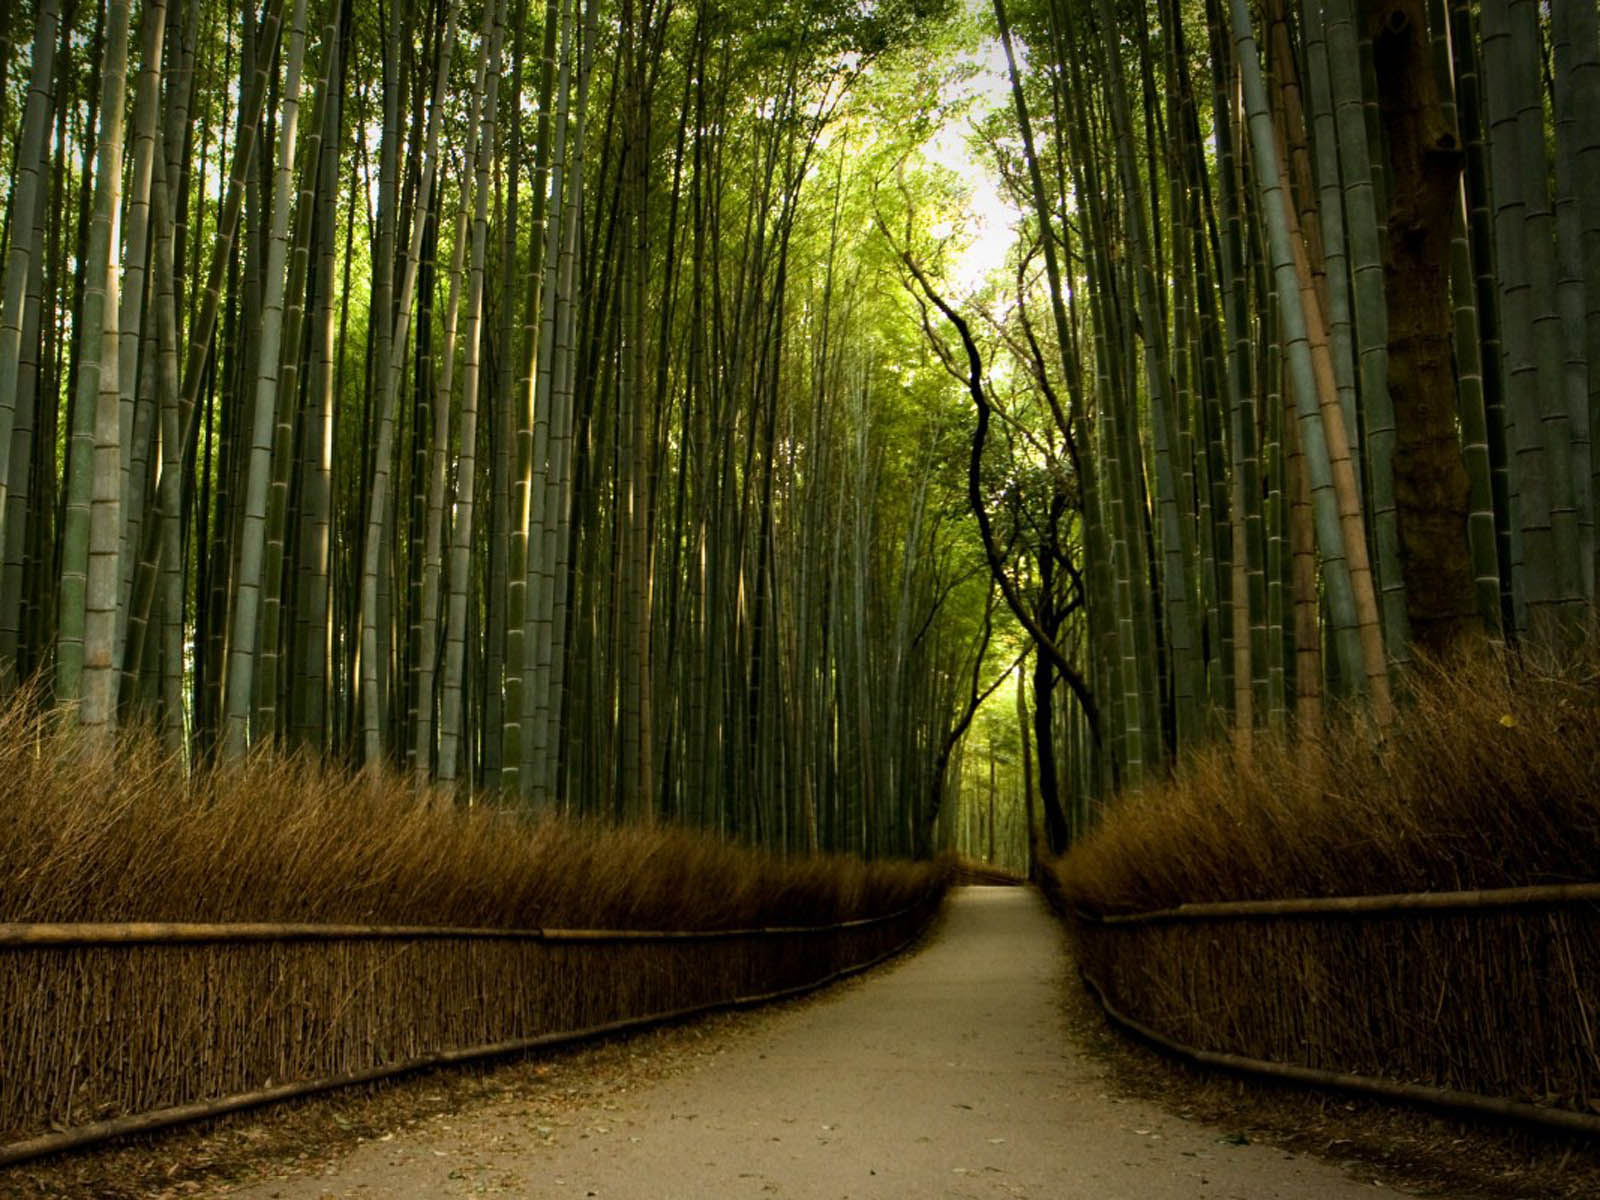 Windows 7 3d Desktop Wallpapers Free Download Wallpapers Bamboo Forest Wallpapers